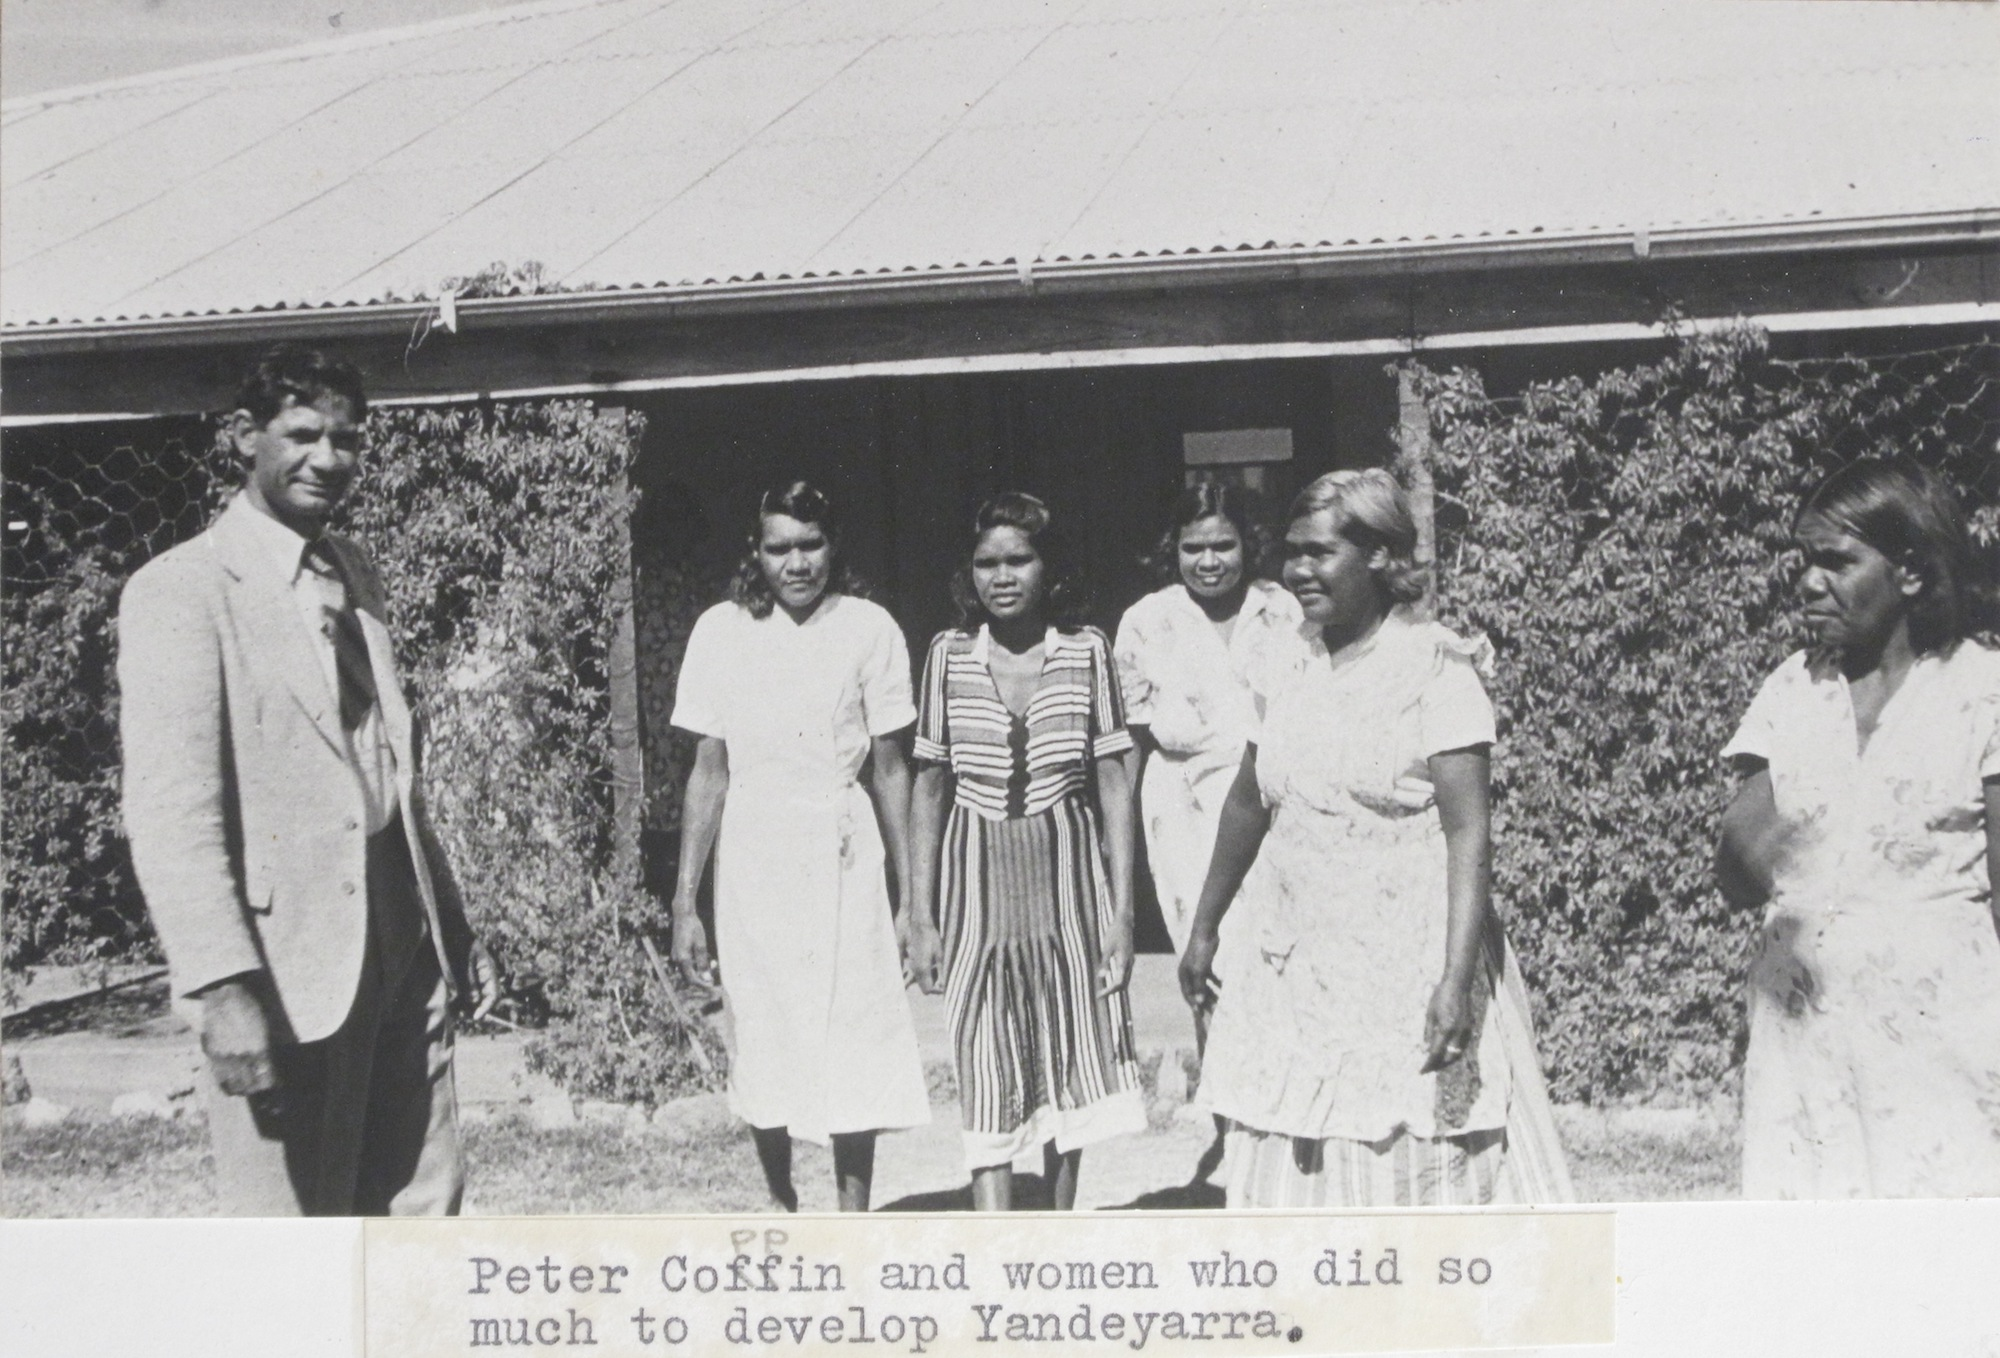 Committee Women and Peter Coppin at Yandeyarra